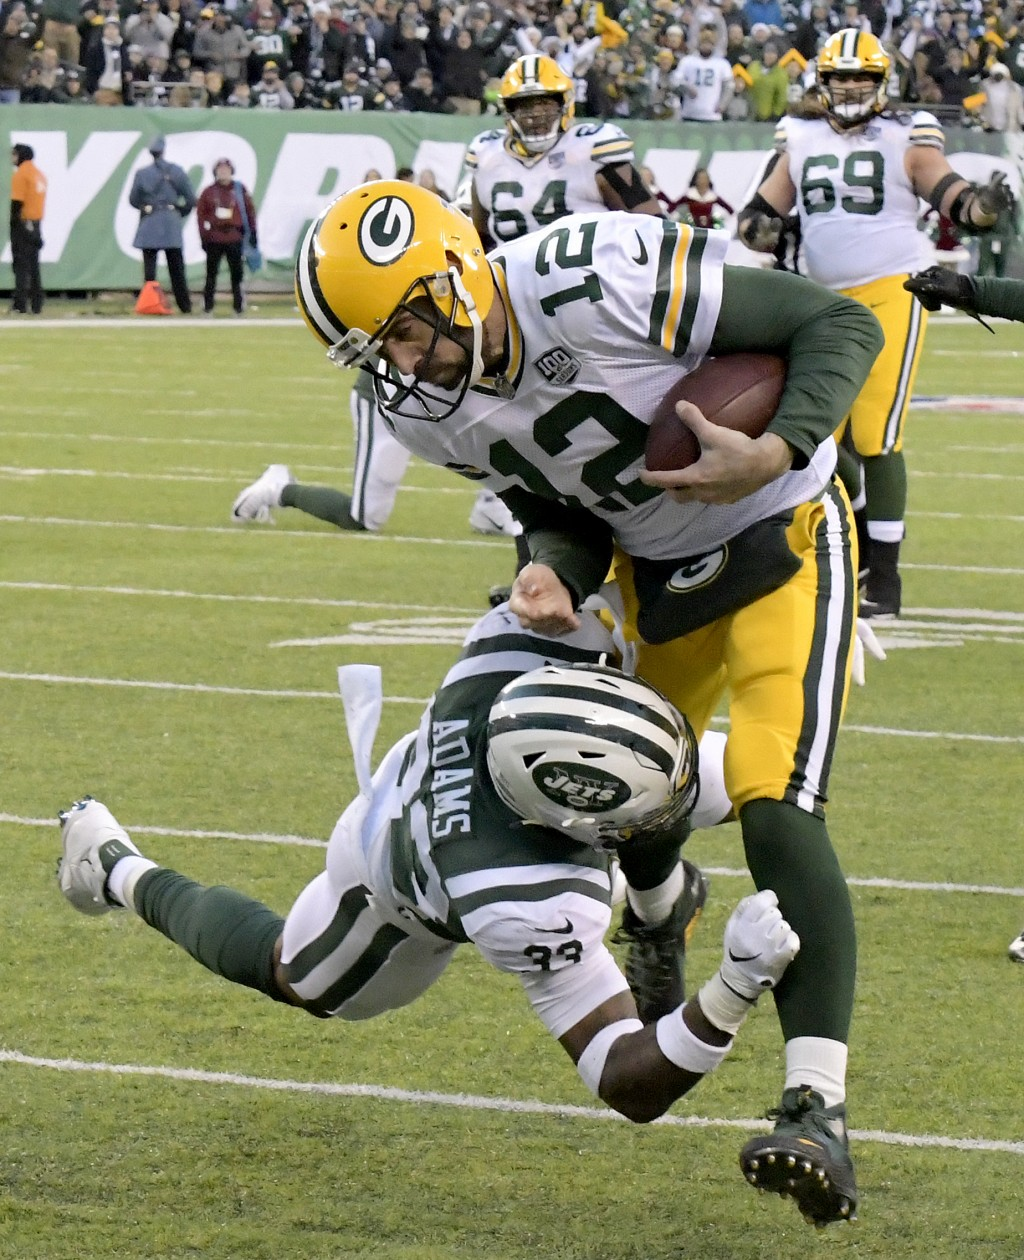 Green Bay Packers quarterback Aaron Rodgers (12) is tackled by New York Jets strong safety Jamal Adams (33) during the second half of an NFL football ...